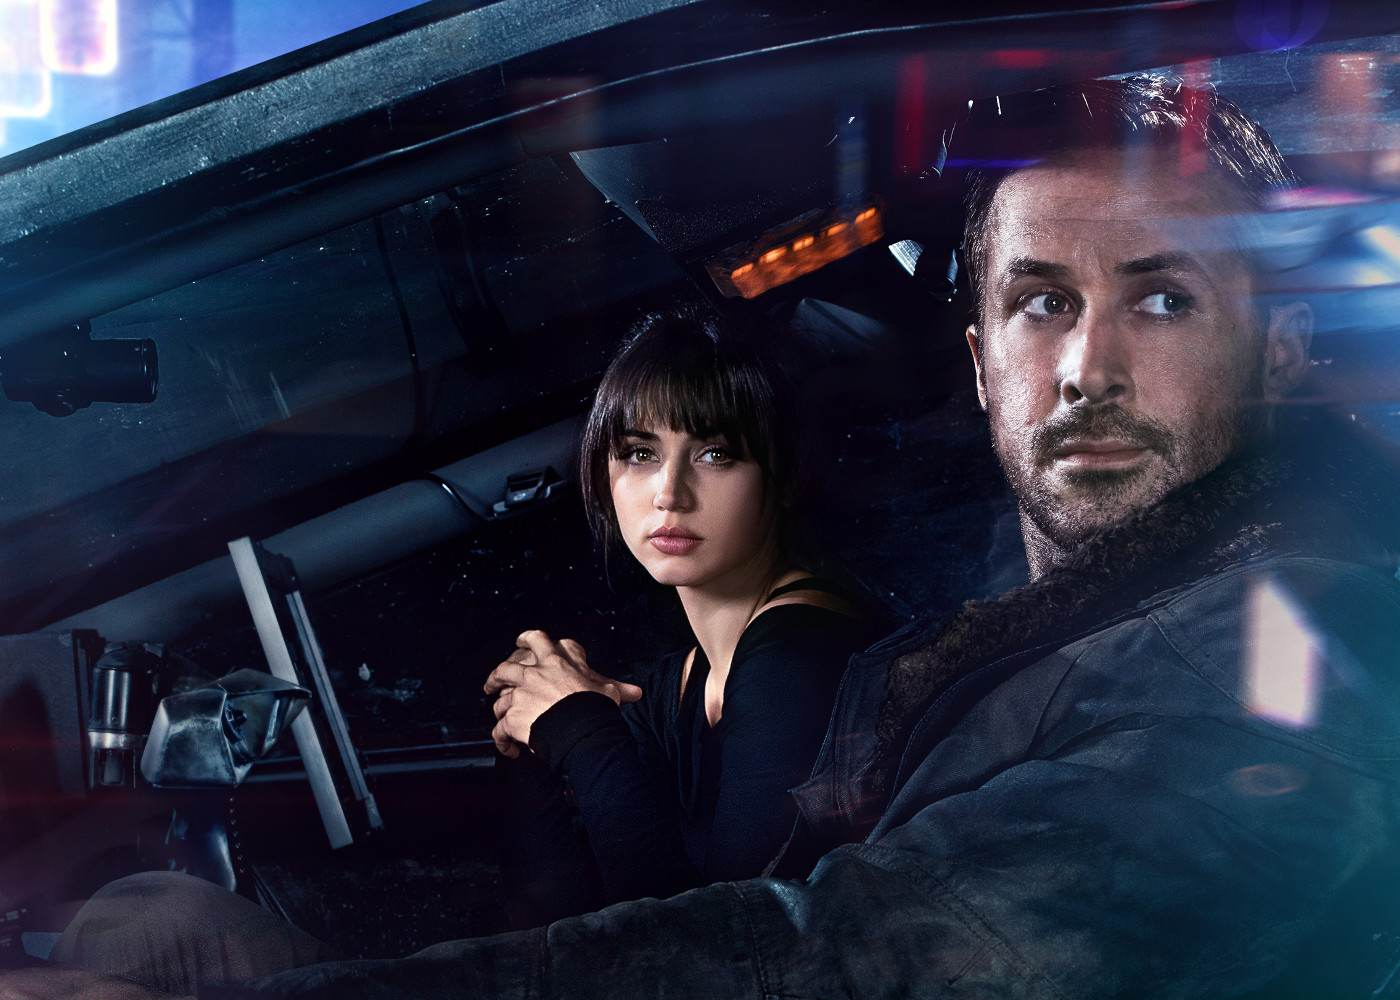 New Footage in Blade Runner 2049 'Begins' TV Spot